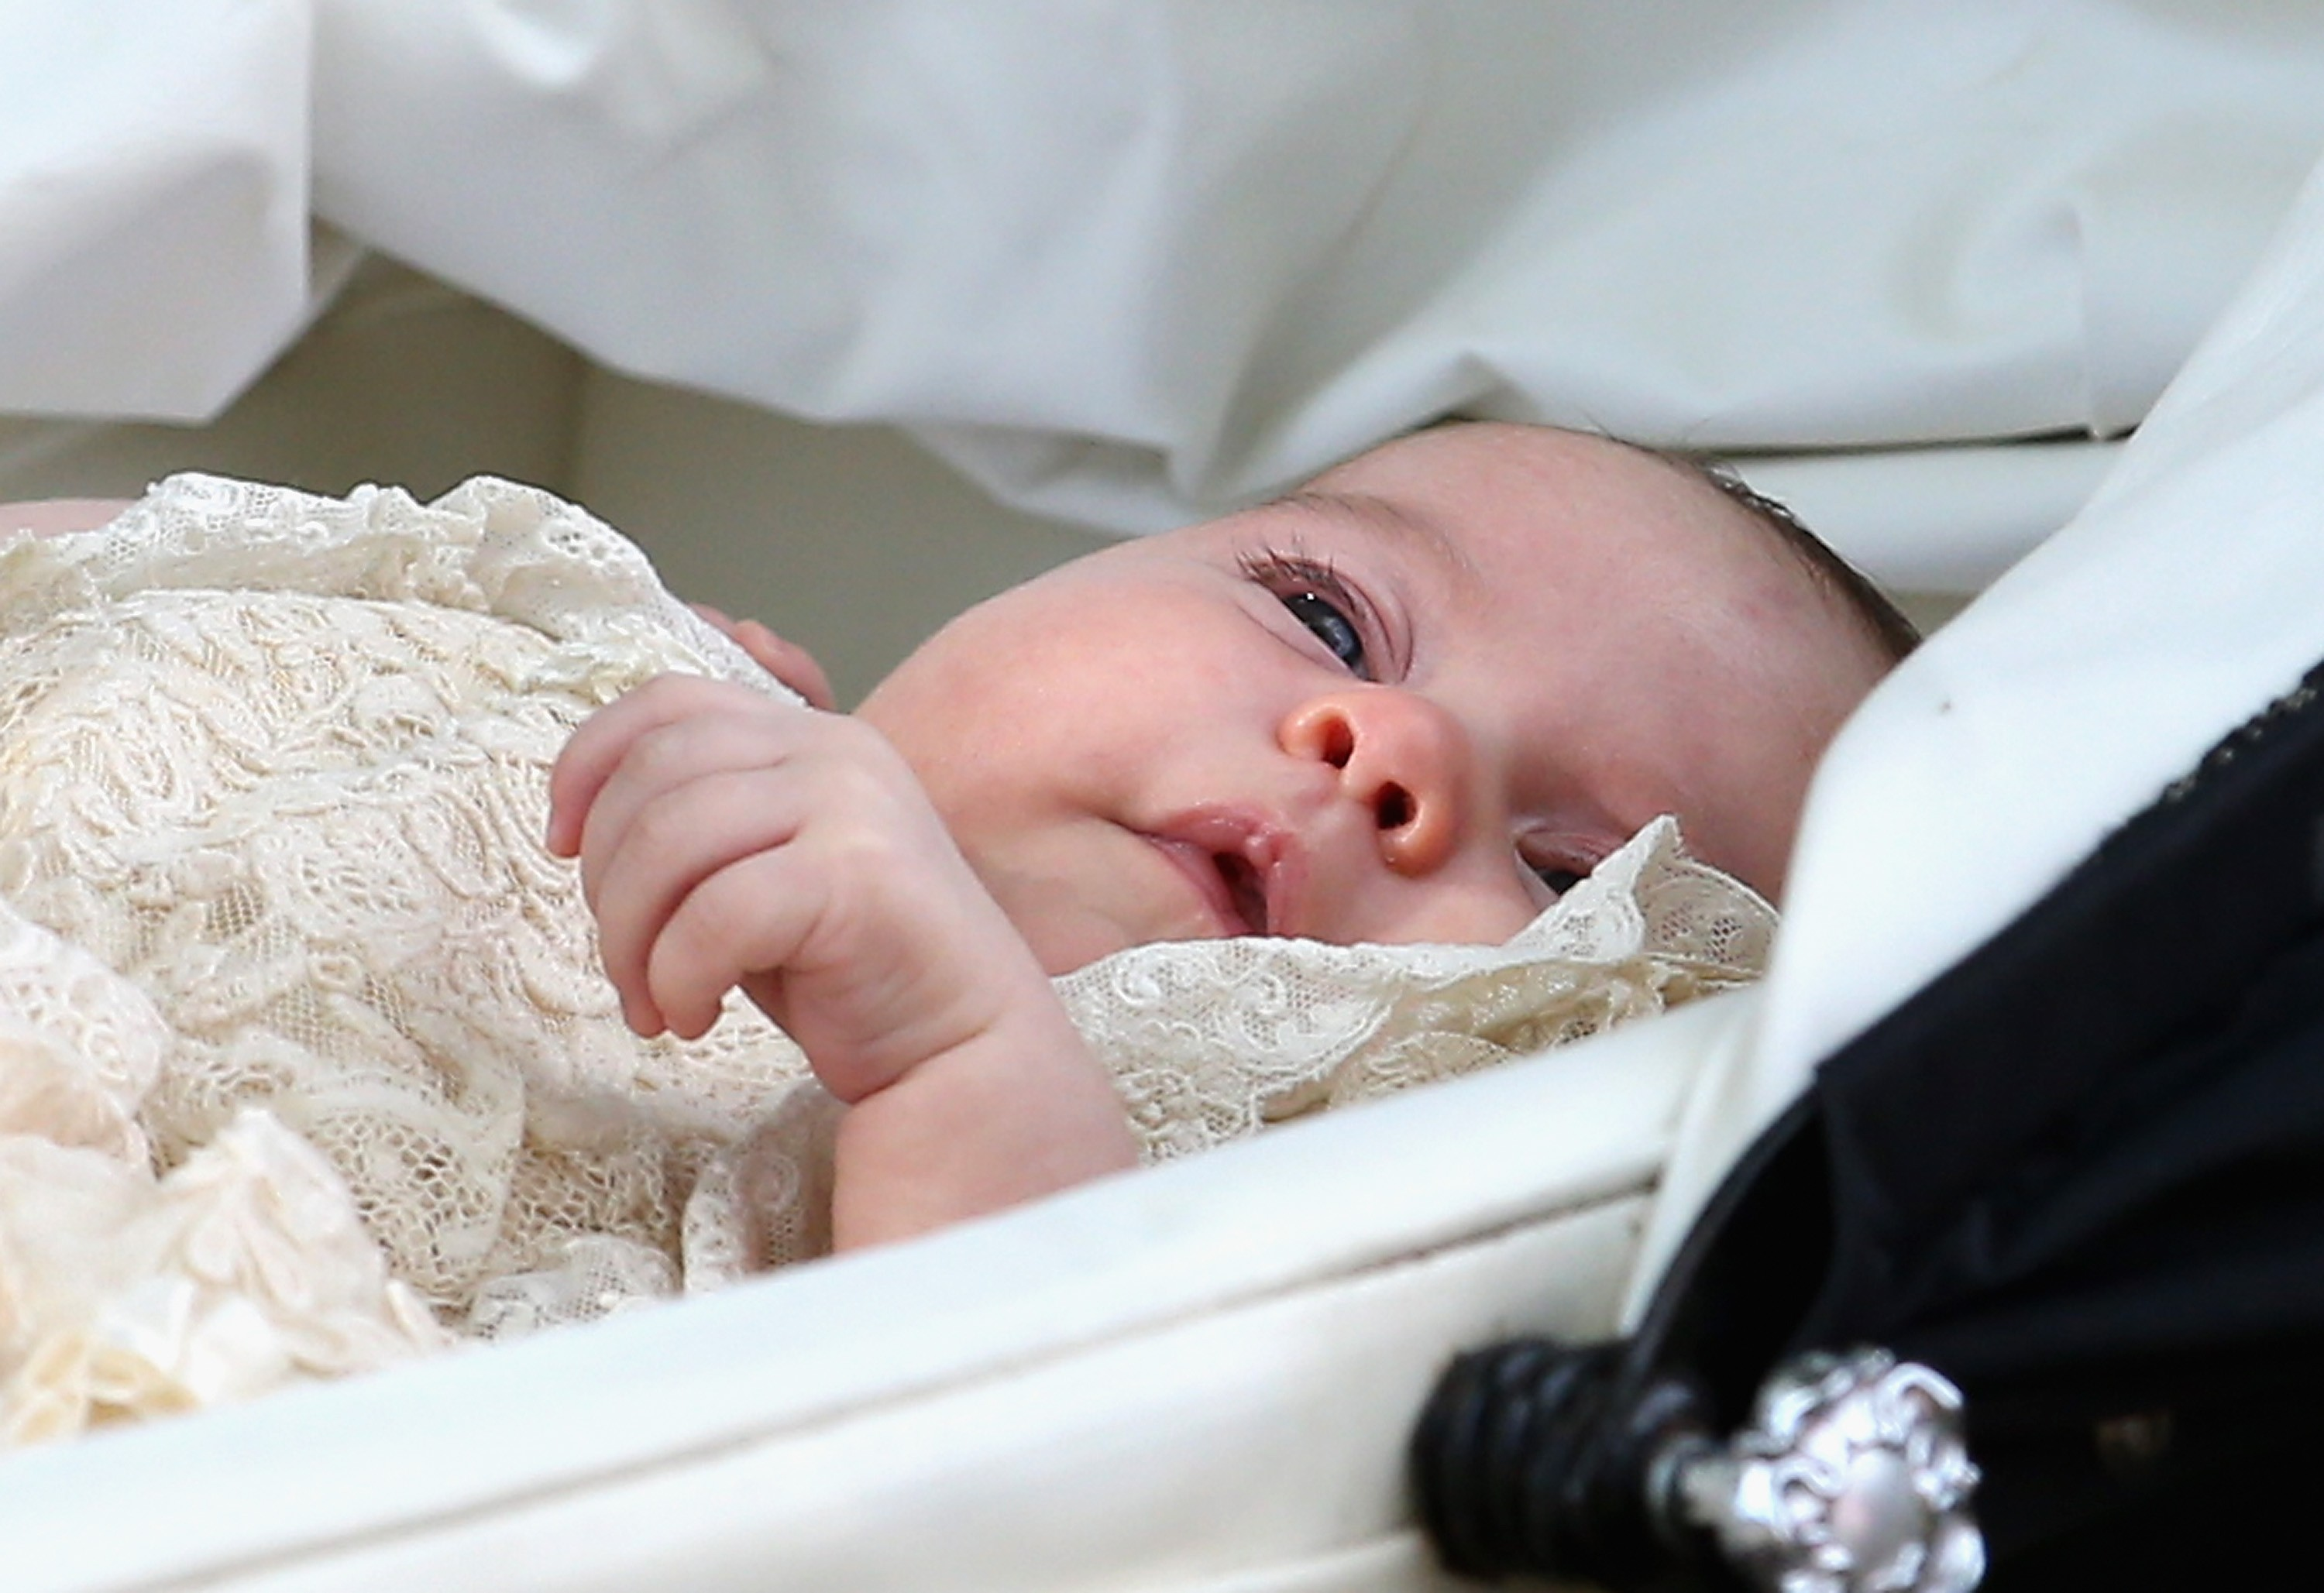 KING'S LYNN, ENGLAND - JULY 05:  Princess Charlotte of Cambridge is pushed in her silver cross pram as she leavesthe Church of St Mary Magdalene on the Sandringham Estate for the Christening of Princess Charlotte of Cambridge on July 5, 2015 in King's Lyn (Foto: Getty Images)